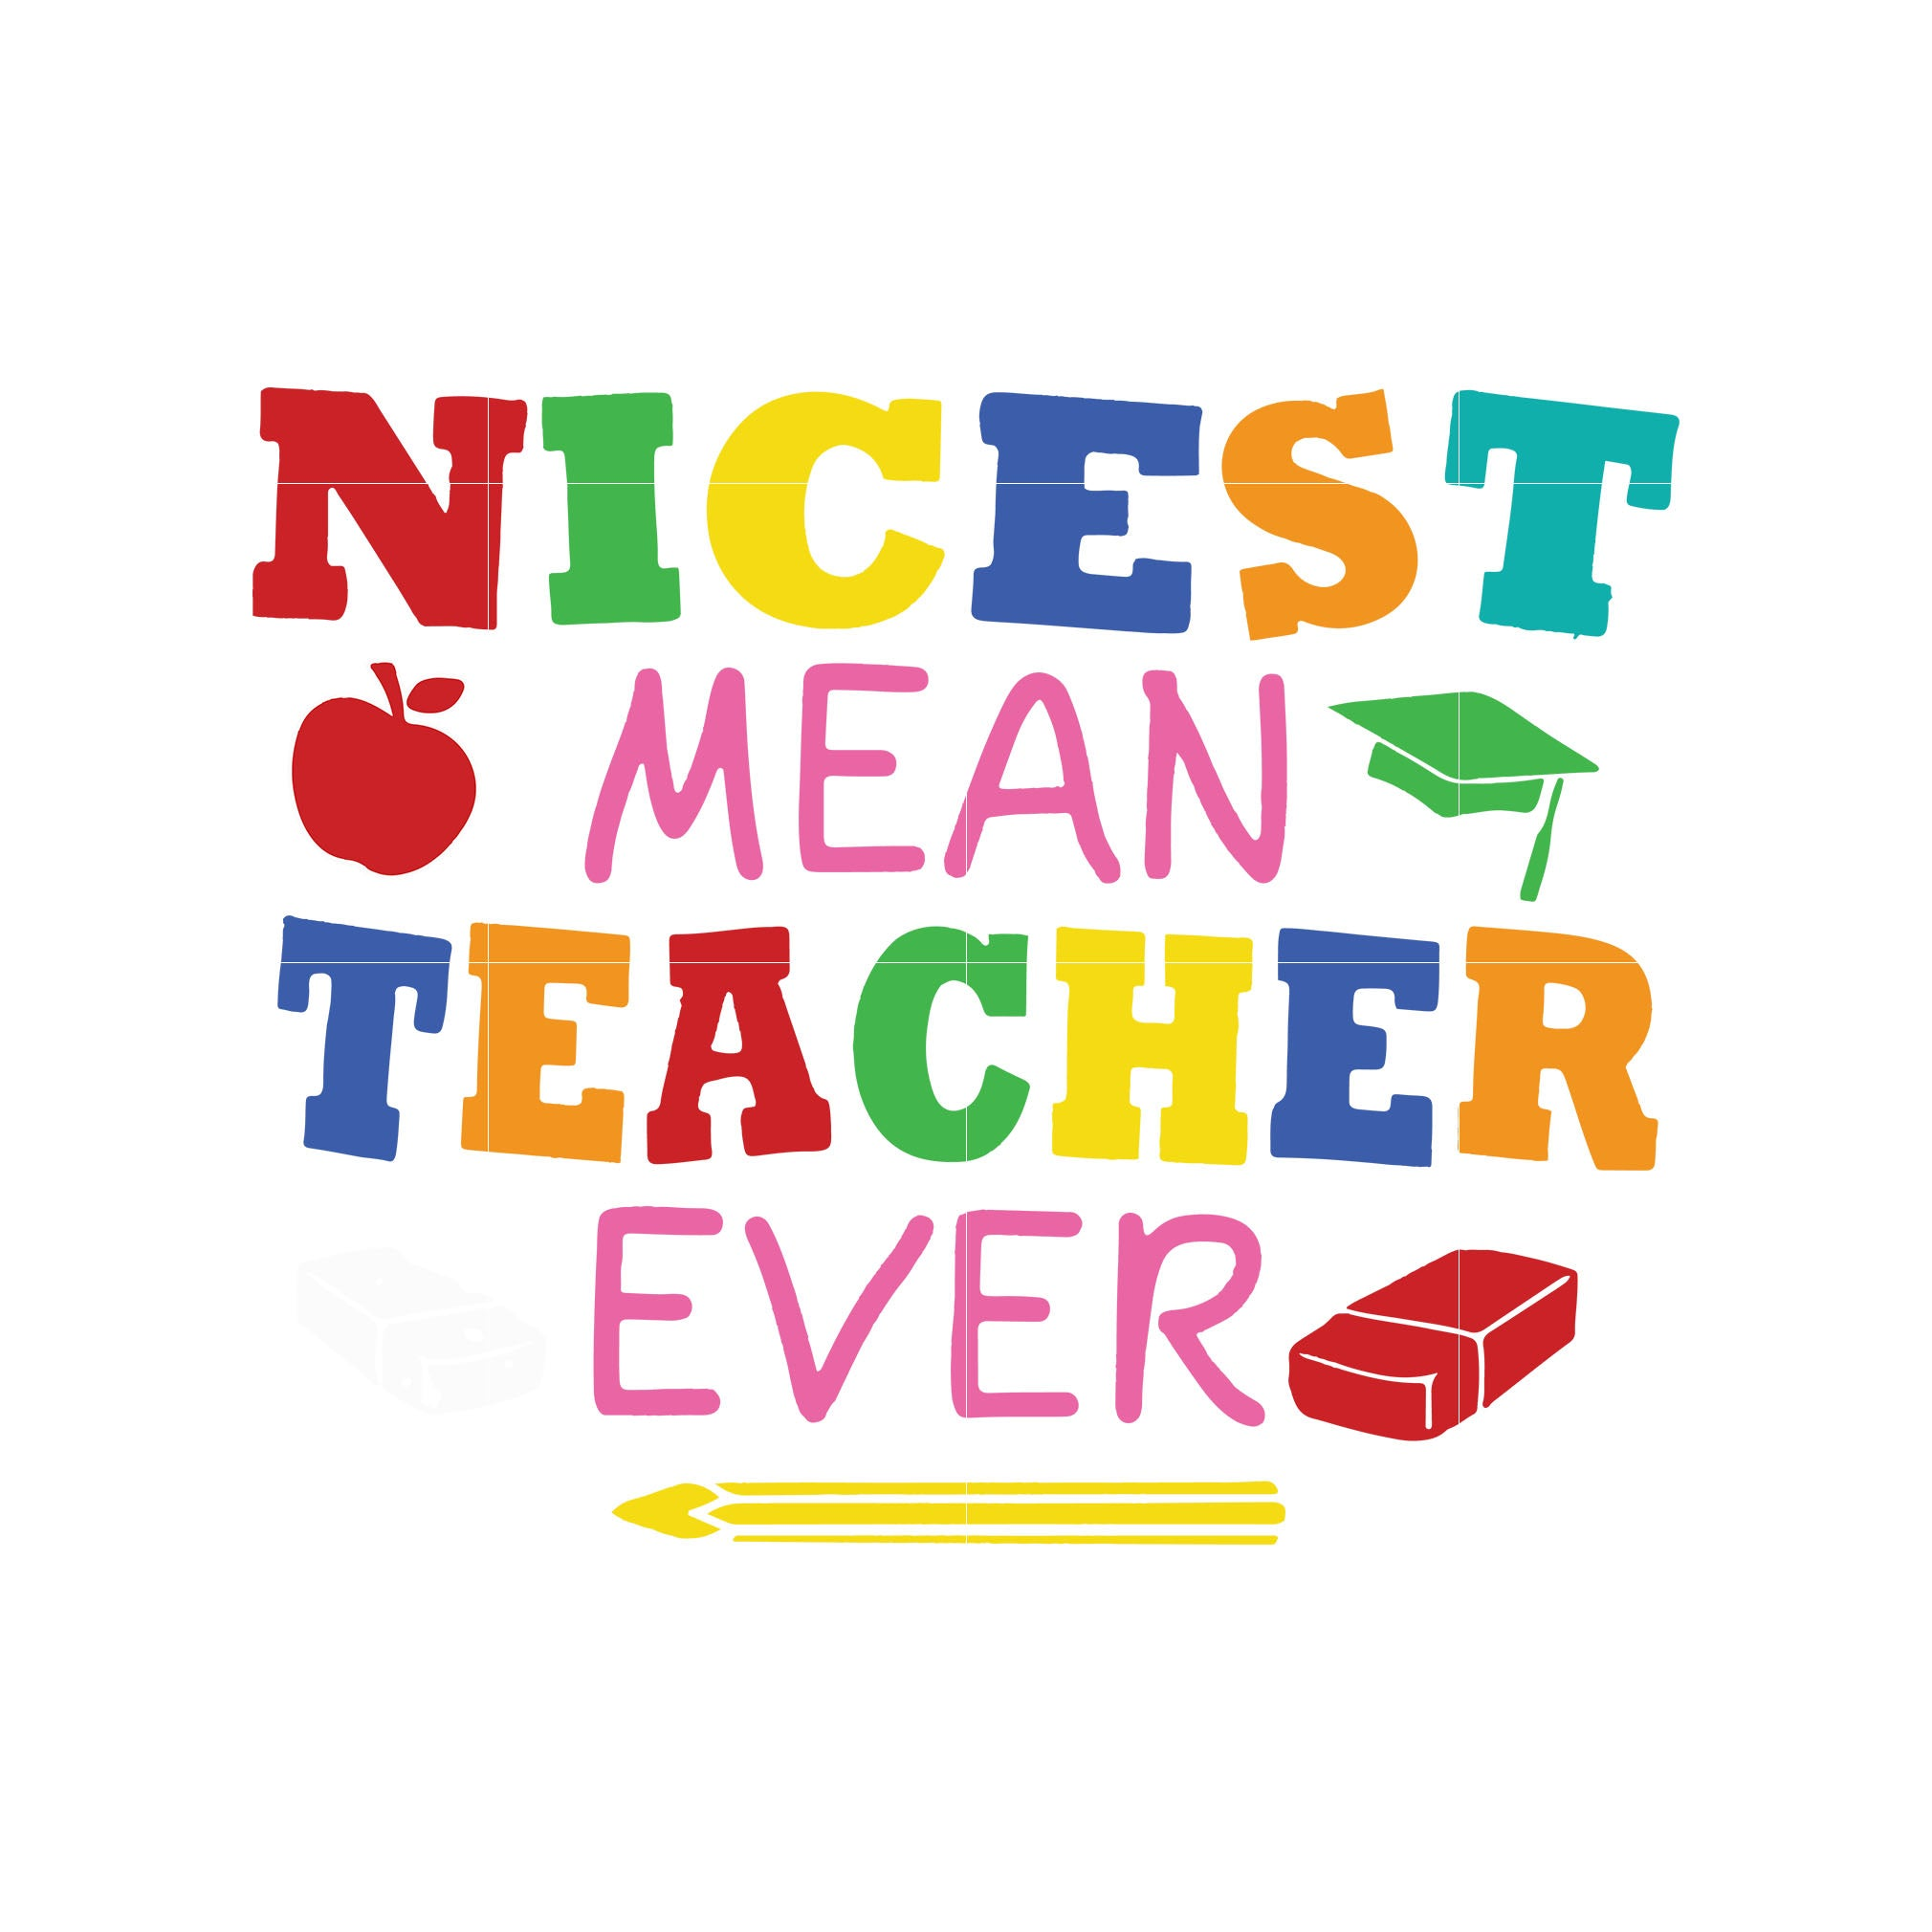 Nicest mean teacher ever svg,dxf,eps,png digital file